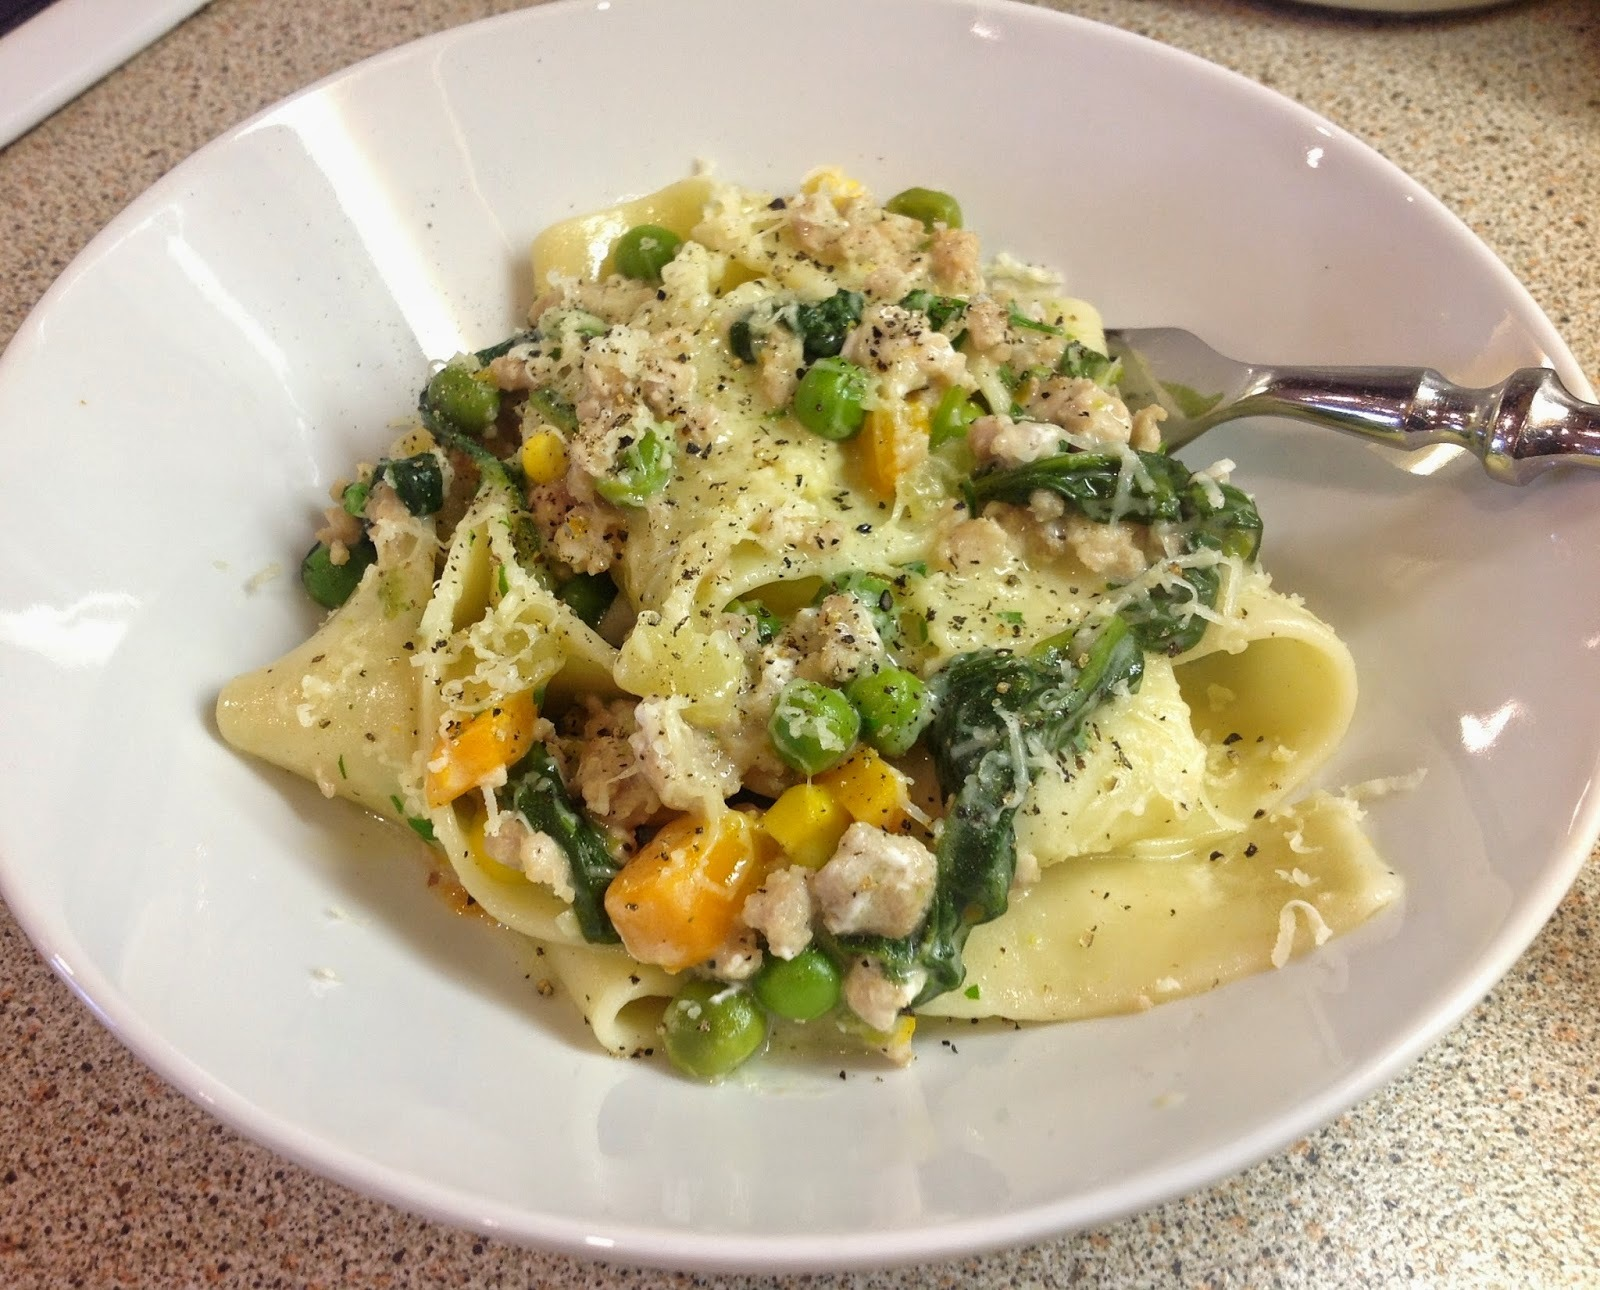 Creamy Chicken and Vegetable Pasta